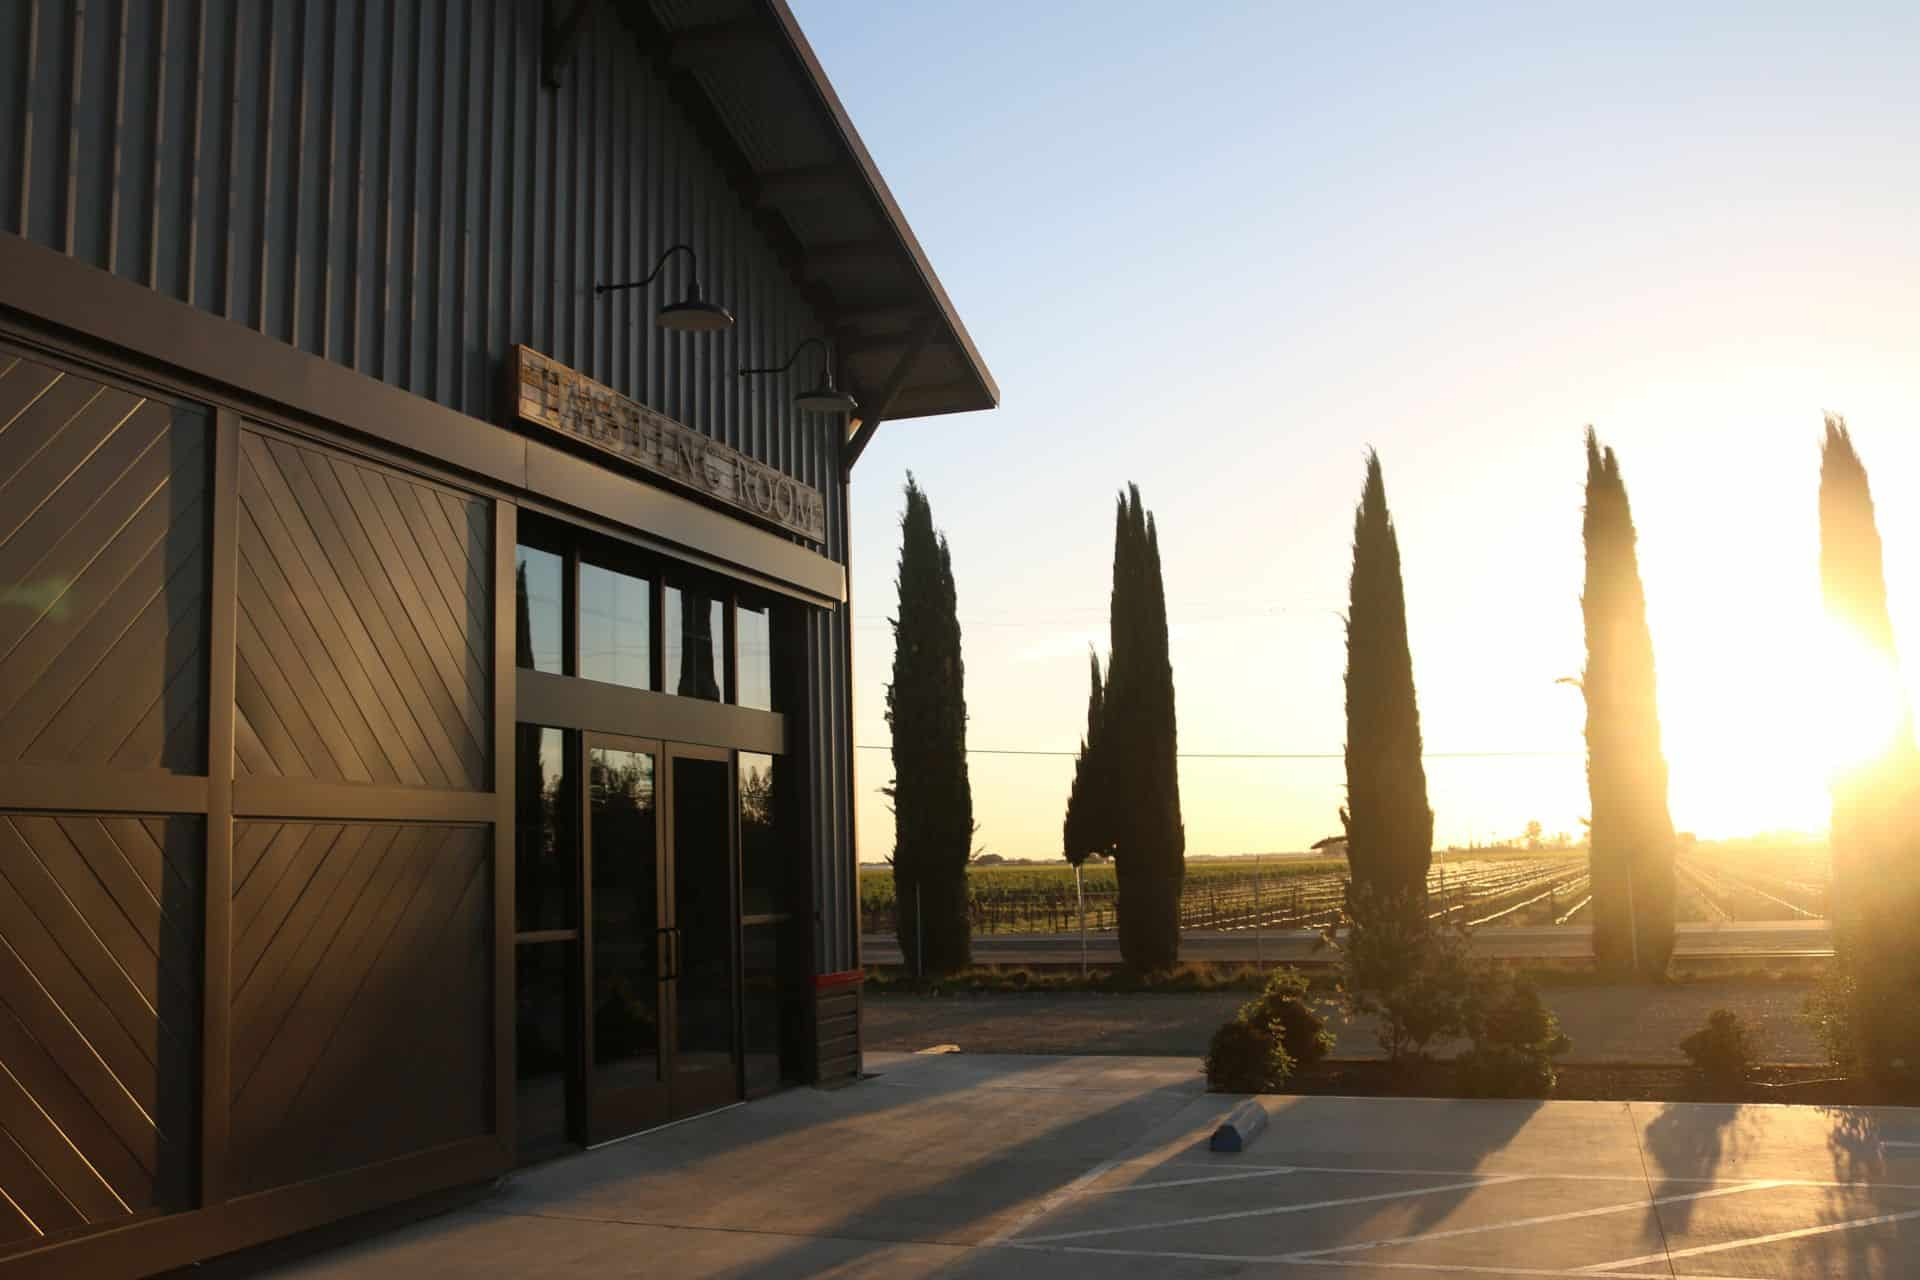 photo of outside entrance to peltier winery tasting room at sunset